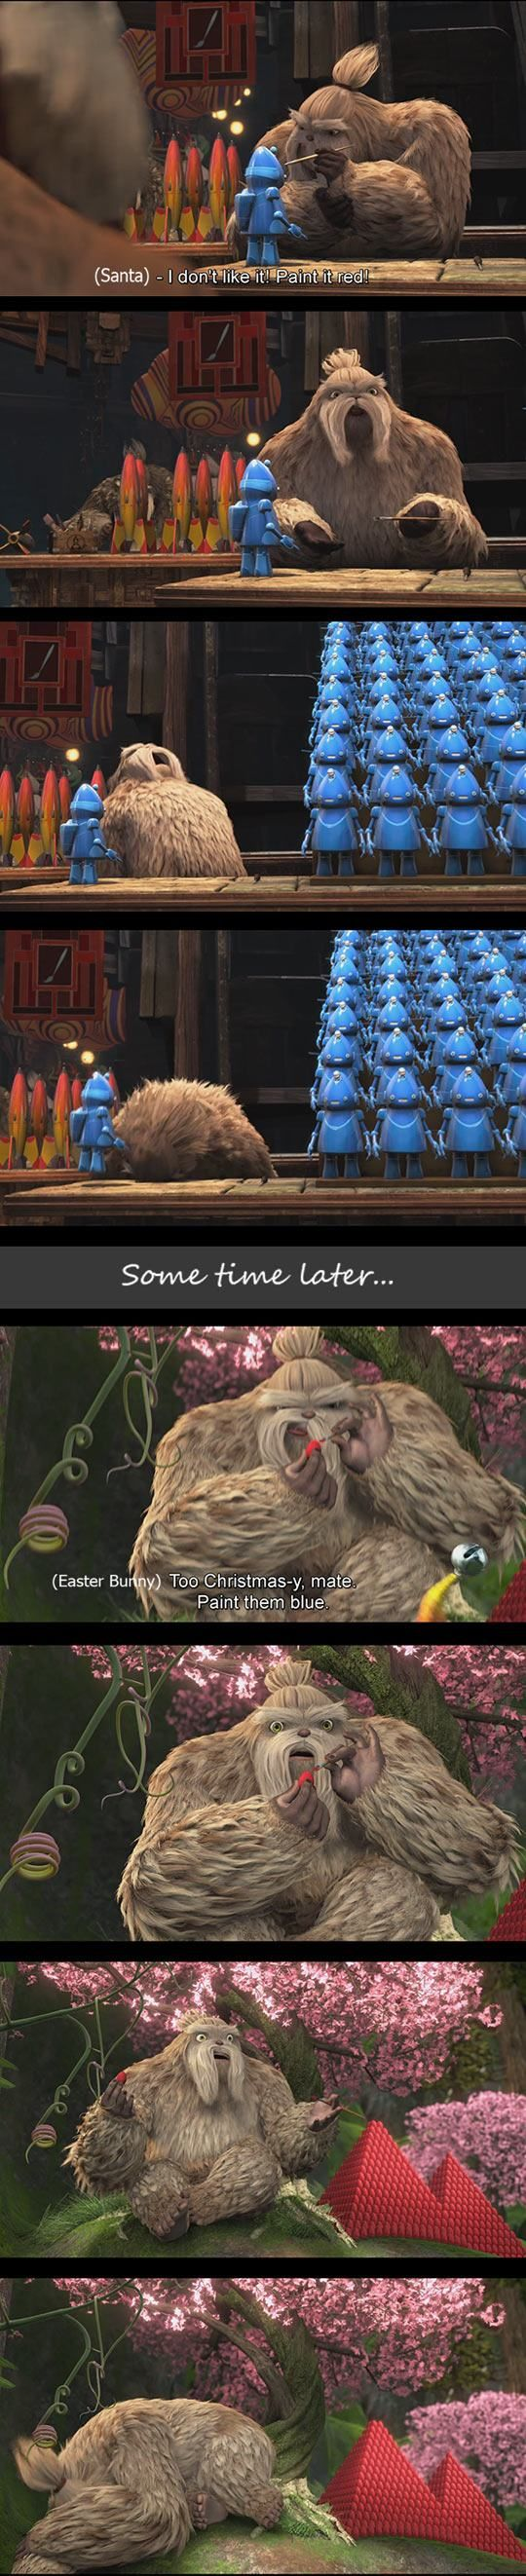 Rise of the Guardians funny meme